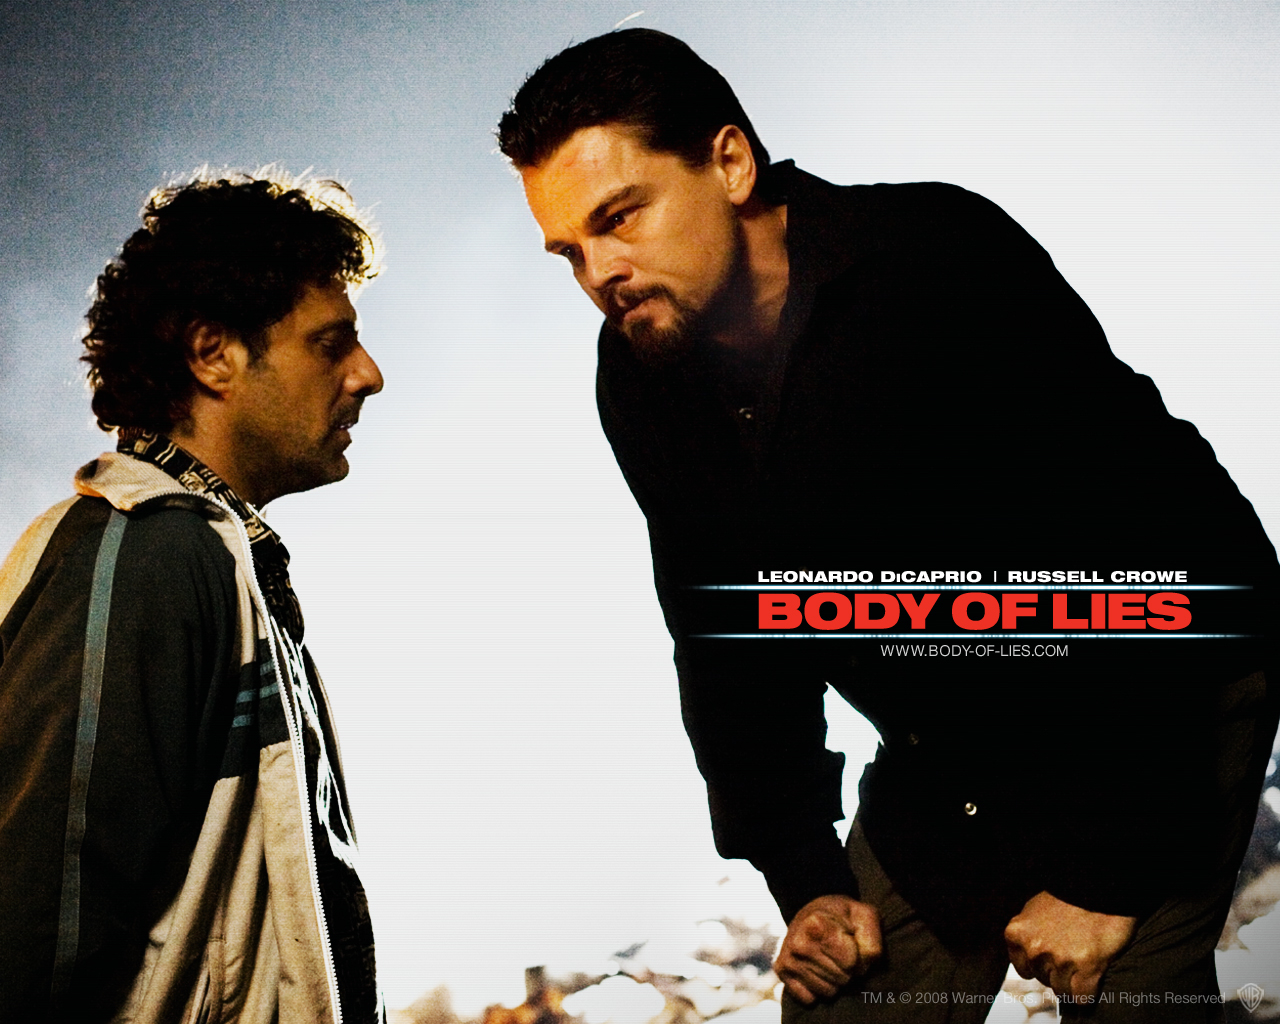 Leonardo_DiCaprio_in_Body_of_Lies_Wallpaper_4_800.jpg